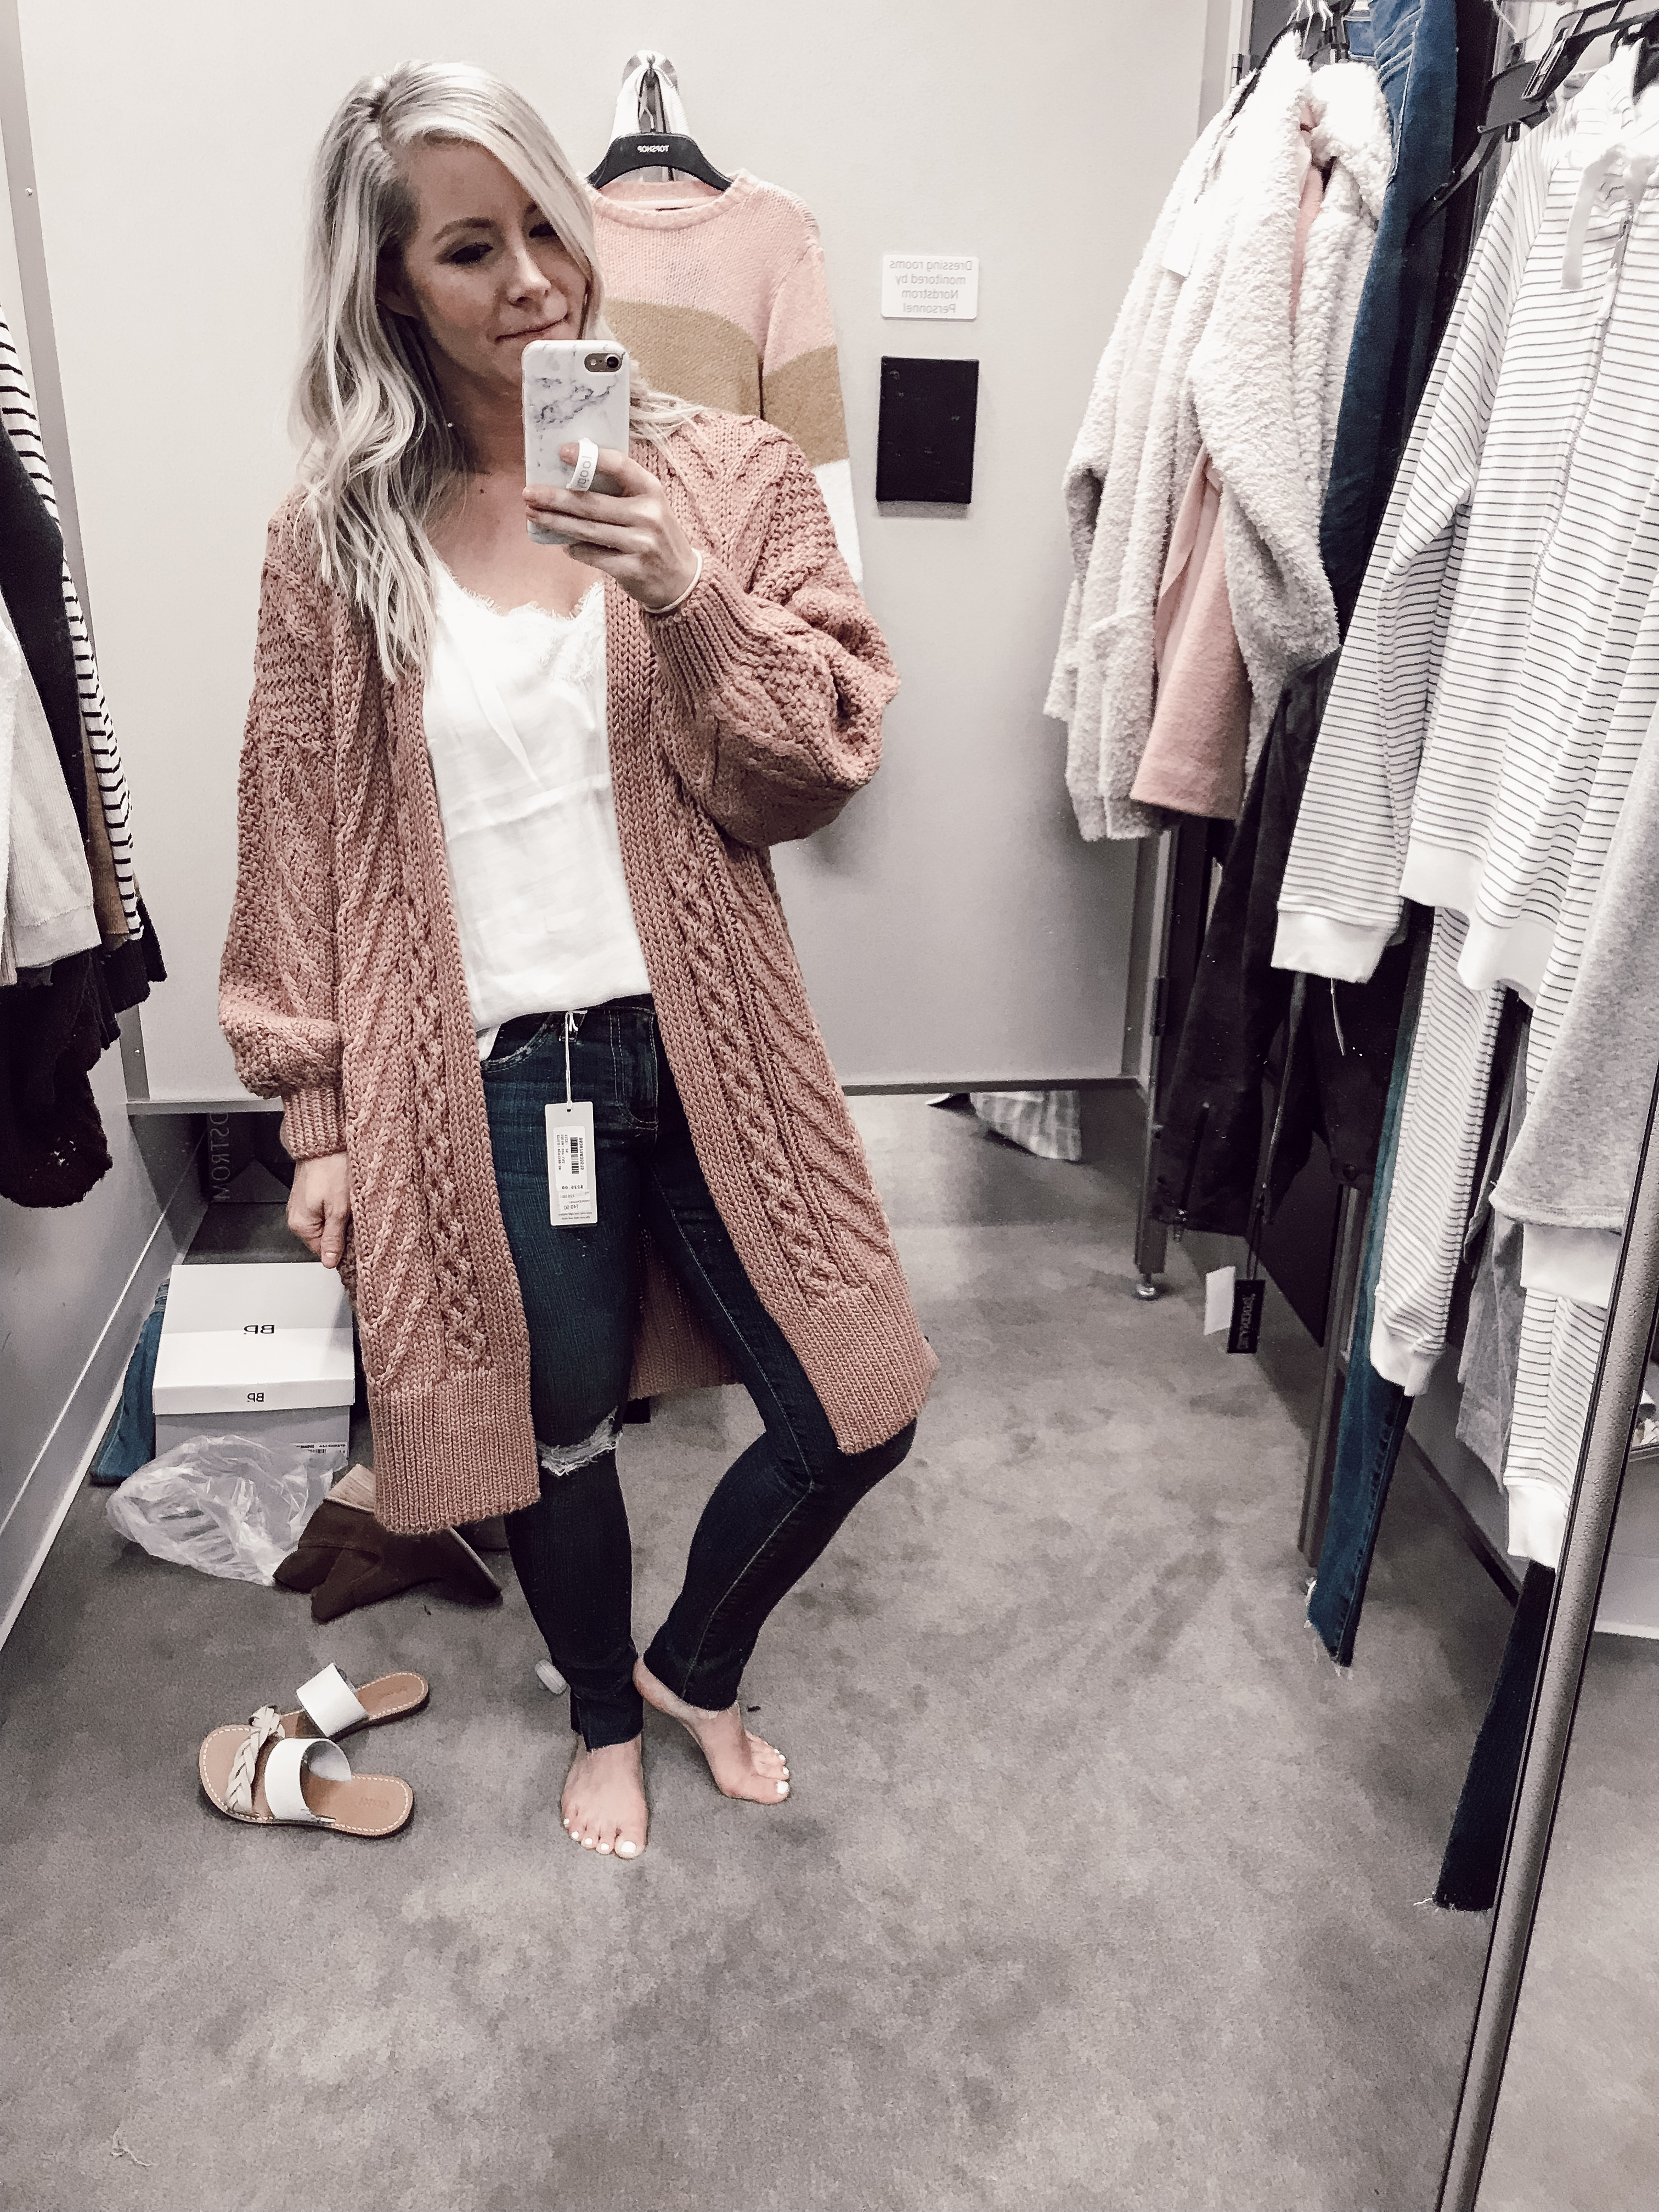 2018 Nordstrom Anniversary Sale Fitting Room Diaries